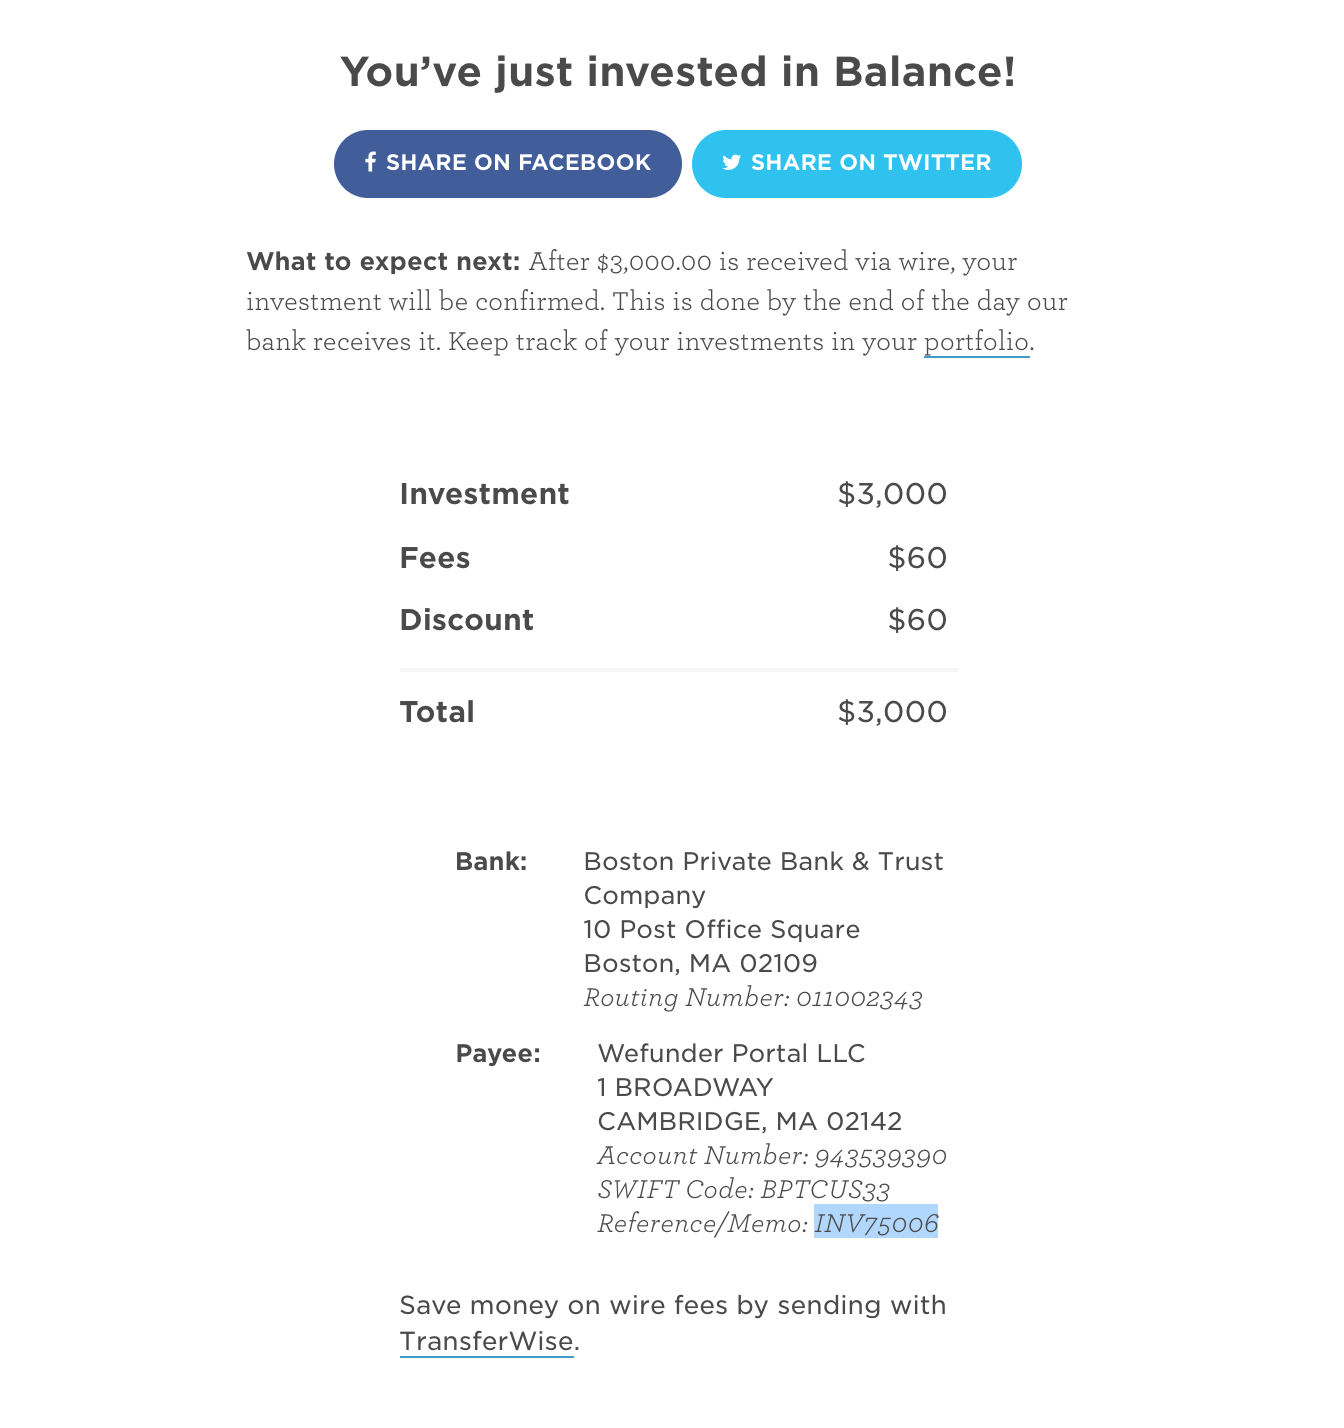 How To Invest In Companies On Wefunder Using Transferwise Wiring Money Routing Number 7 Nearly There